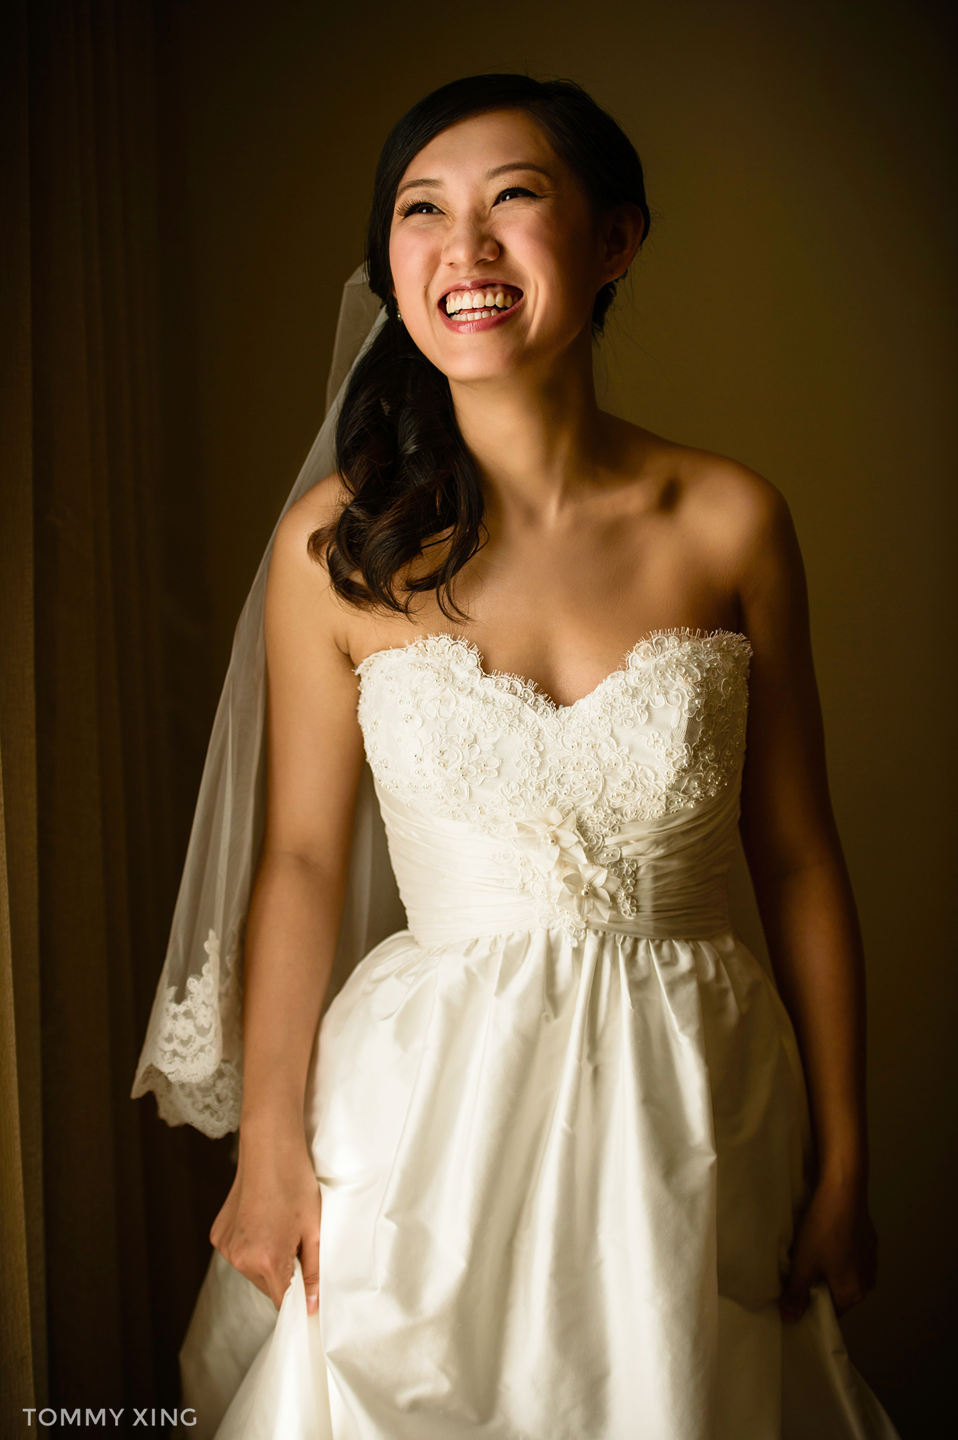 STANFORD MEMORIAL CHURCH WEDDING SAN FRANCISCO BAY AREA 斯坦福教堂婚礼 洛杉矶婚礼婚纱摄影师  Tommy Xing 23.jpg